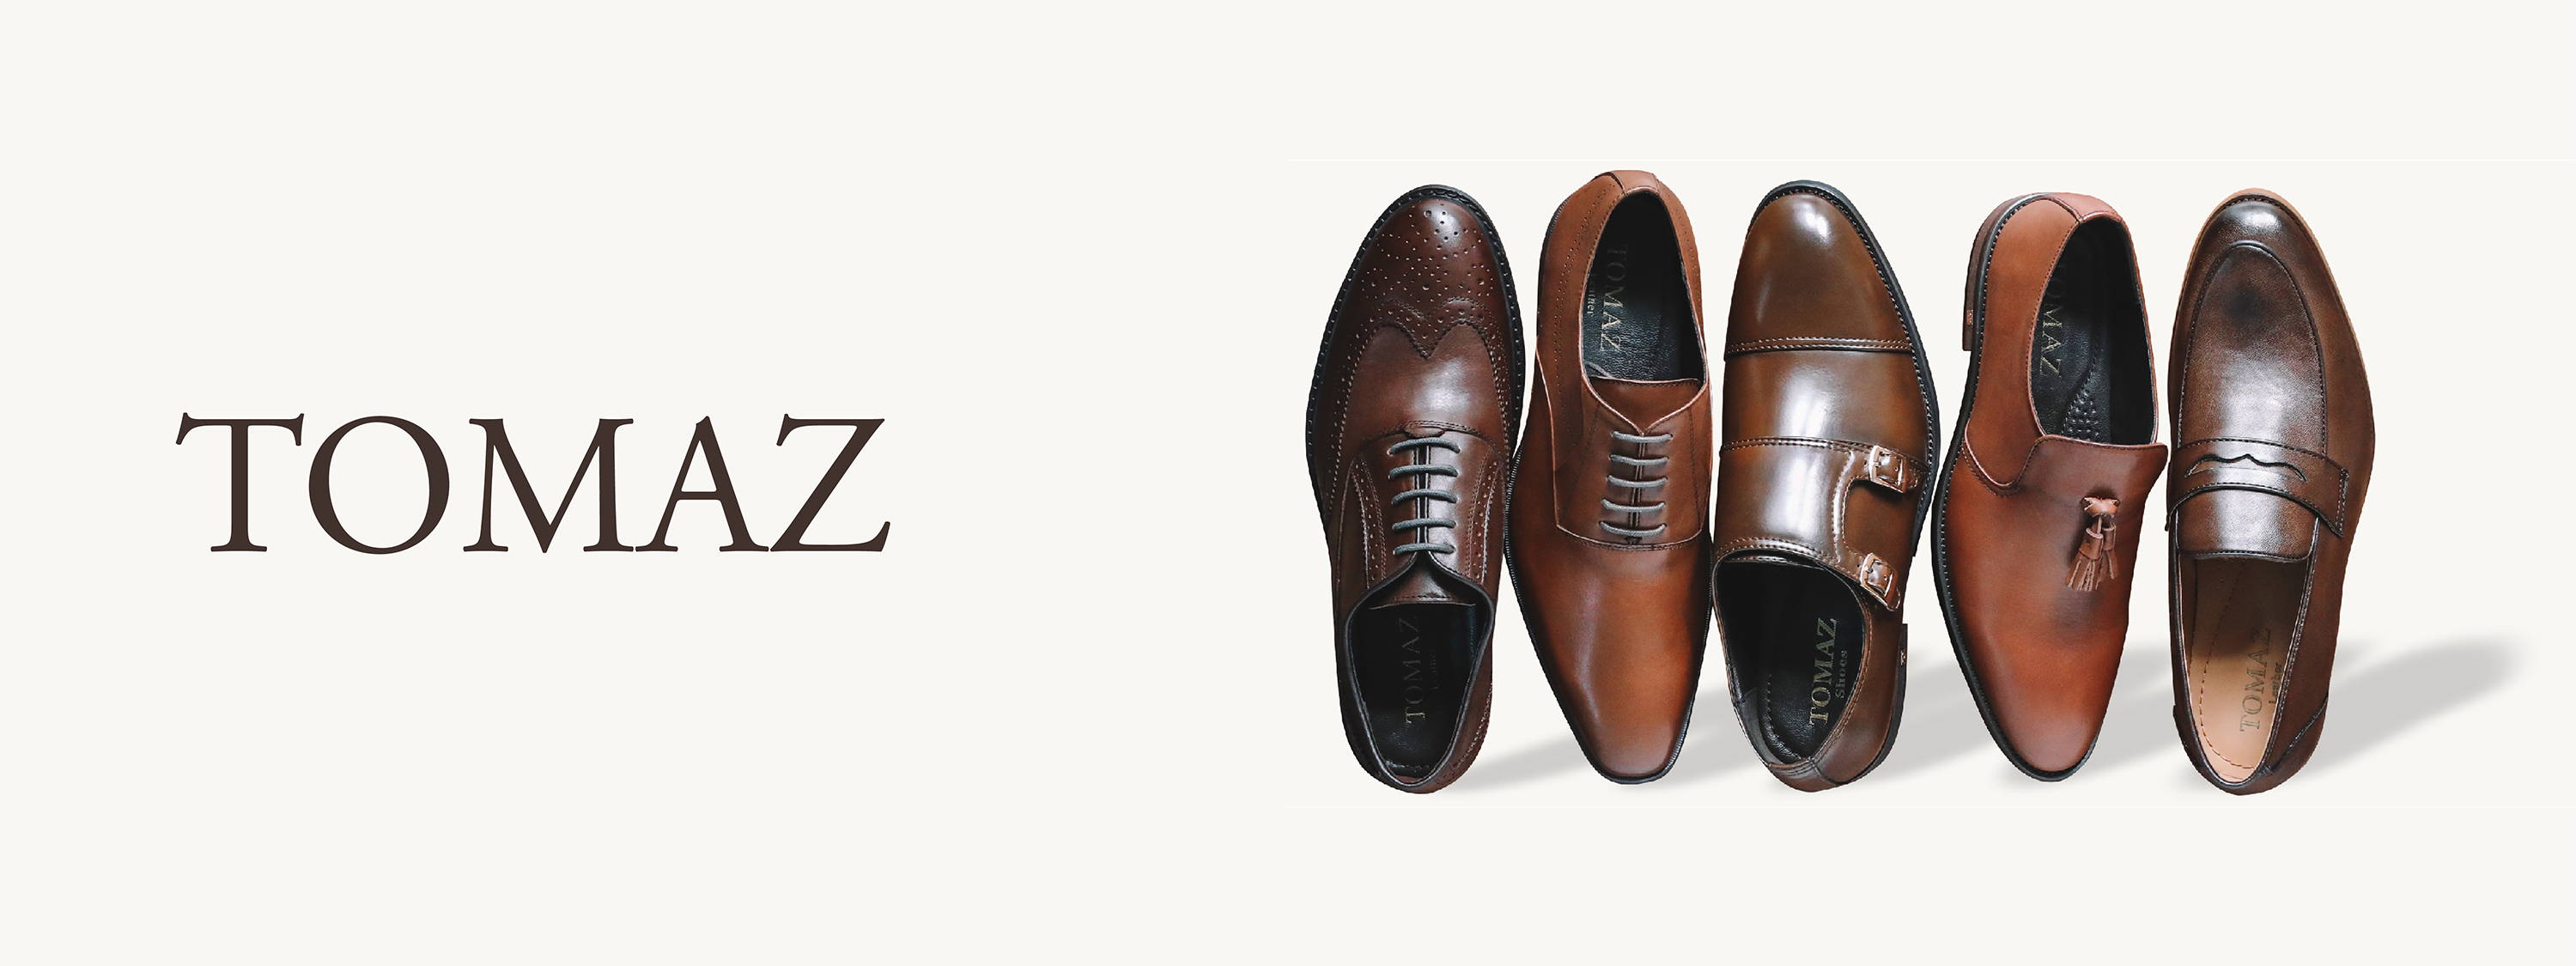 Dress Shoes for the Gentleman